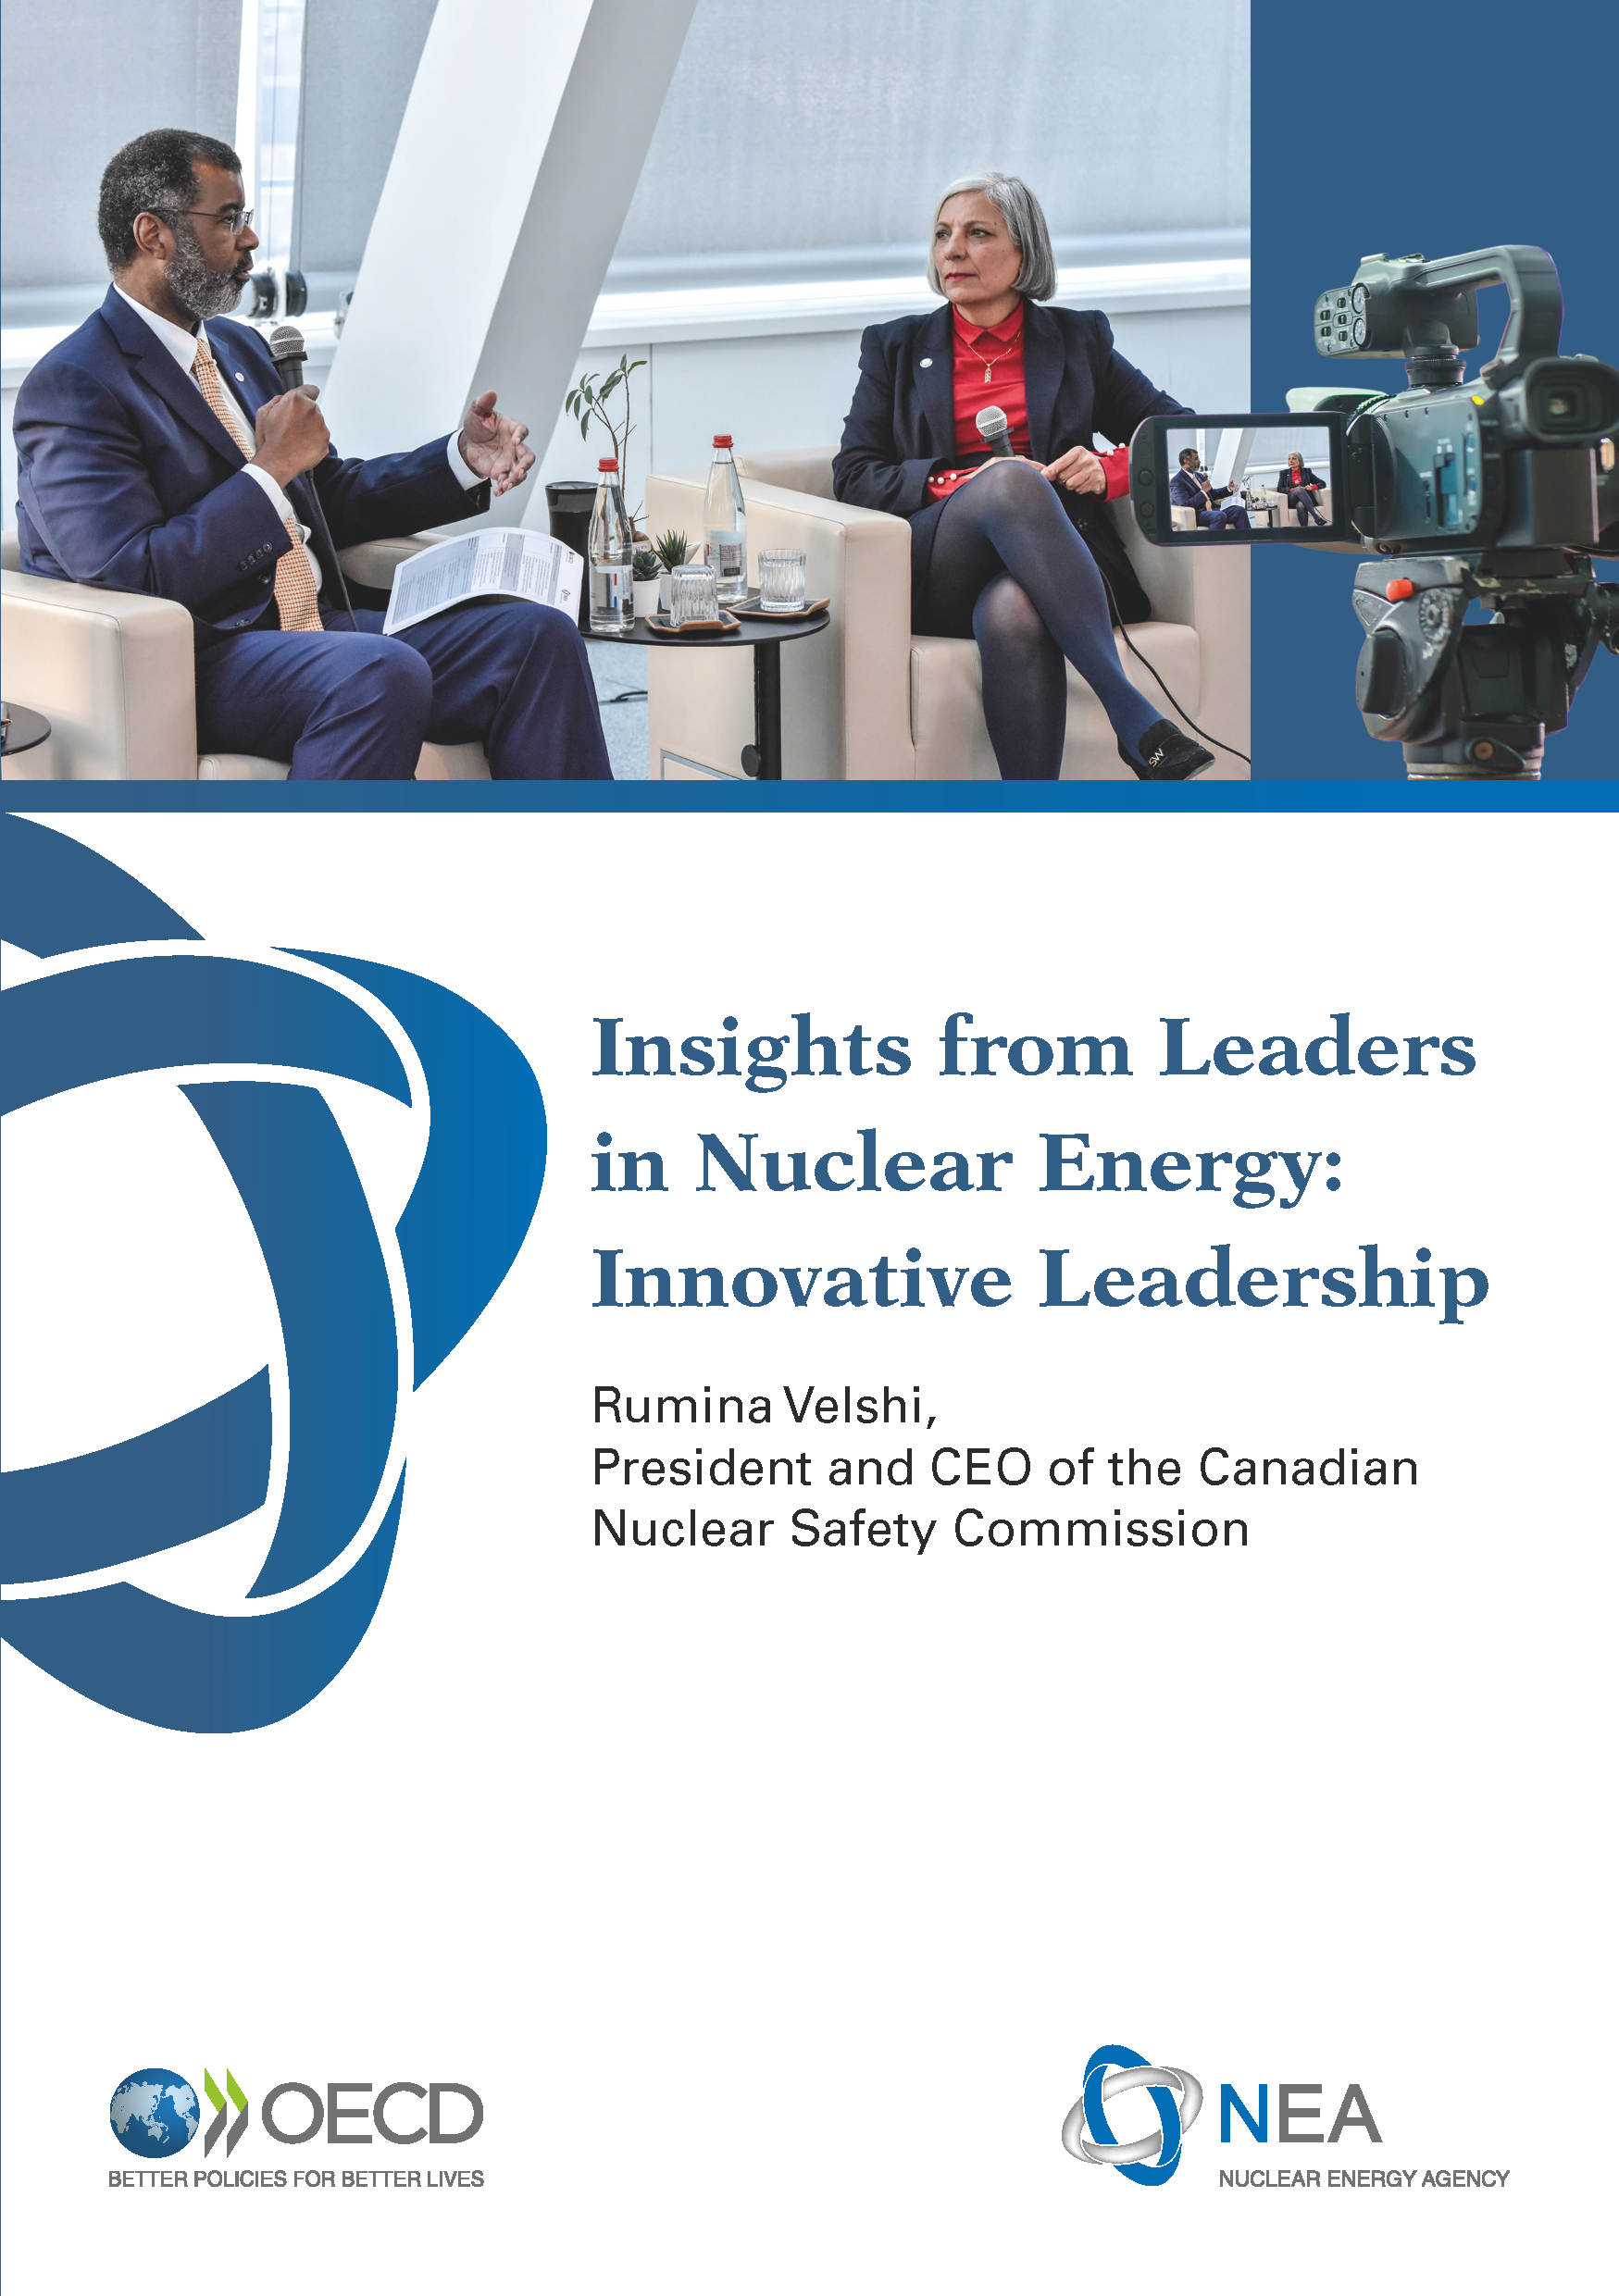 Insights from Leaders in Nuclear Energy: Innovative Leadership, A conversation with Rumina Velshi, President and CEO of the Canadian Nuclear Safety Commission (CNSC)